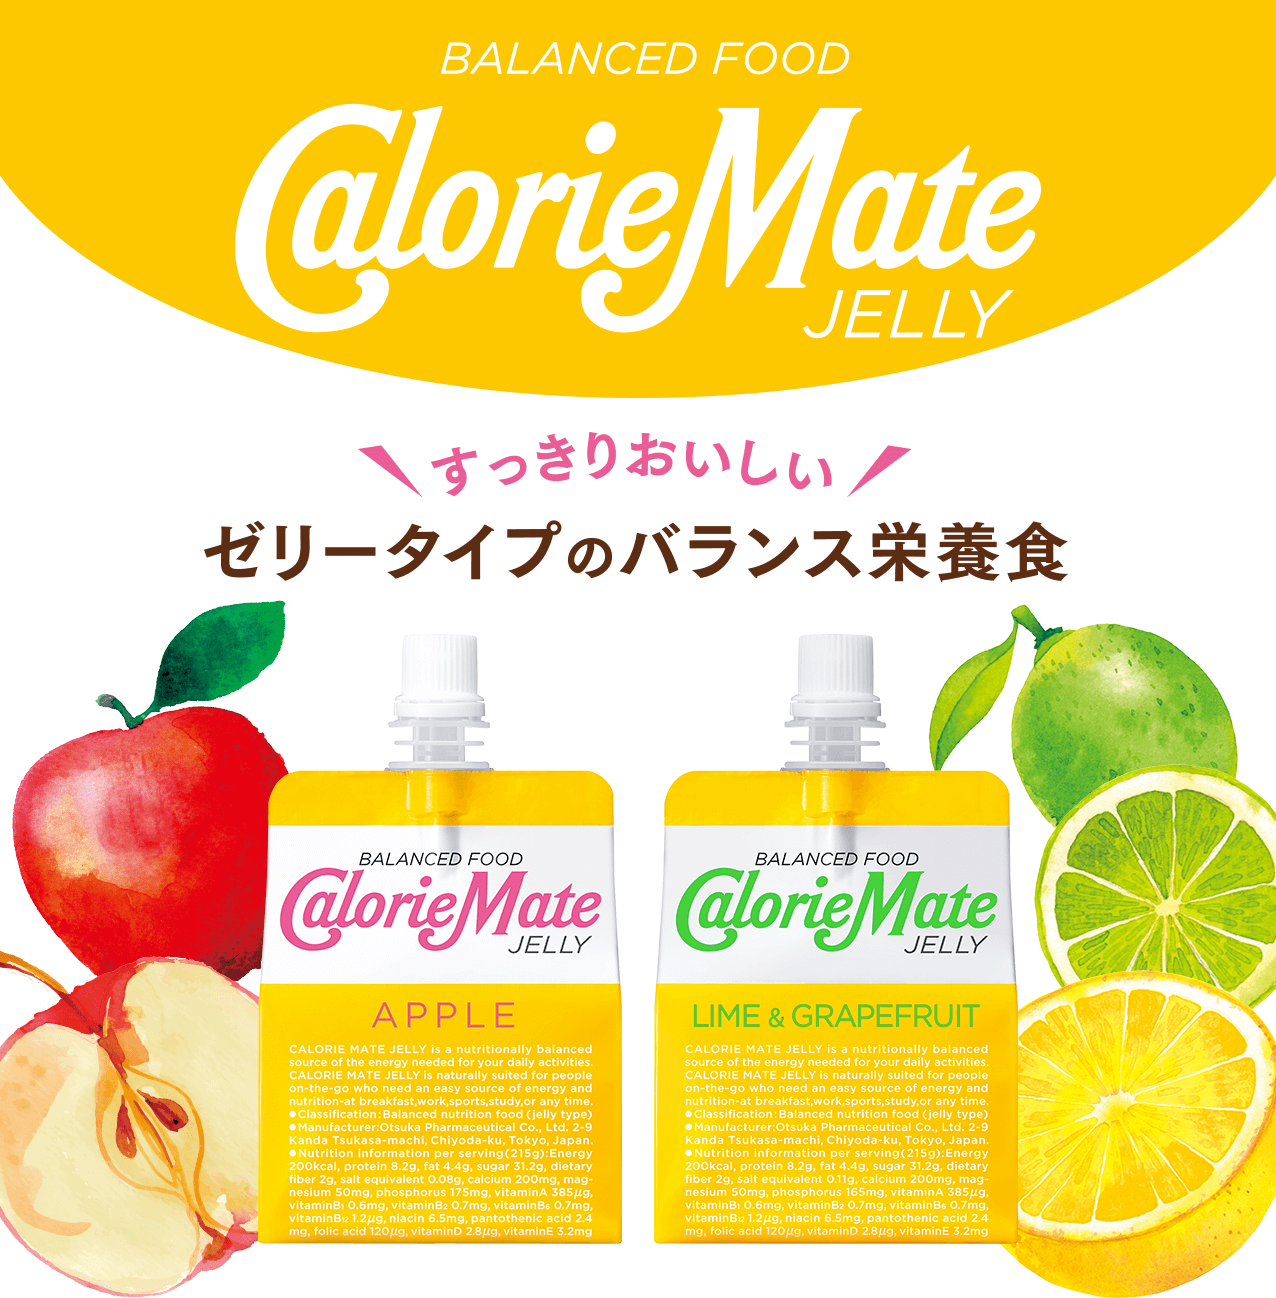 BALANCED FOOD Calorie Mate JELLY   スッキリおいしい ゼリータイプのバランス栄養食